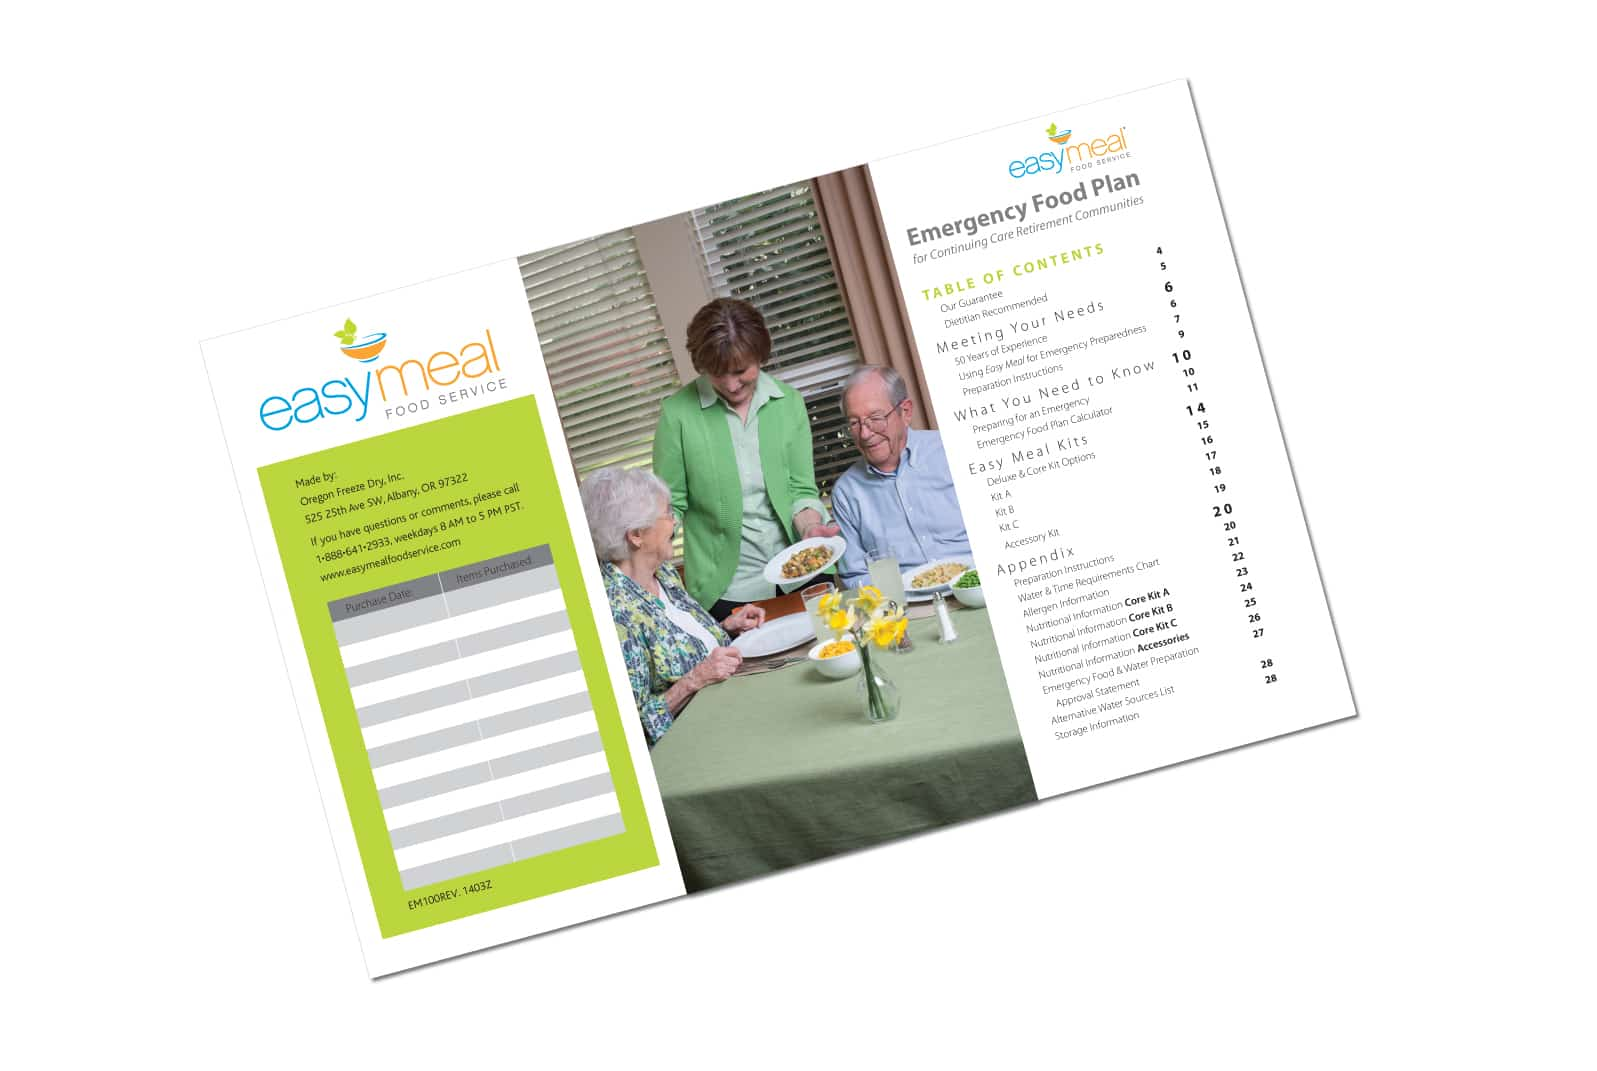 Table of Contents and Book Design for Easy Meal Food Service